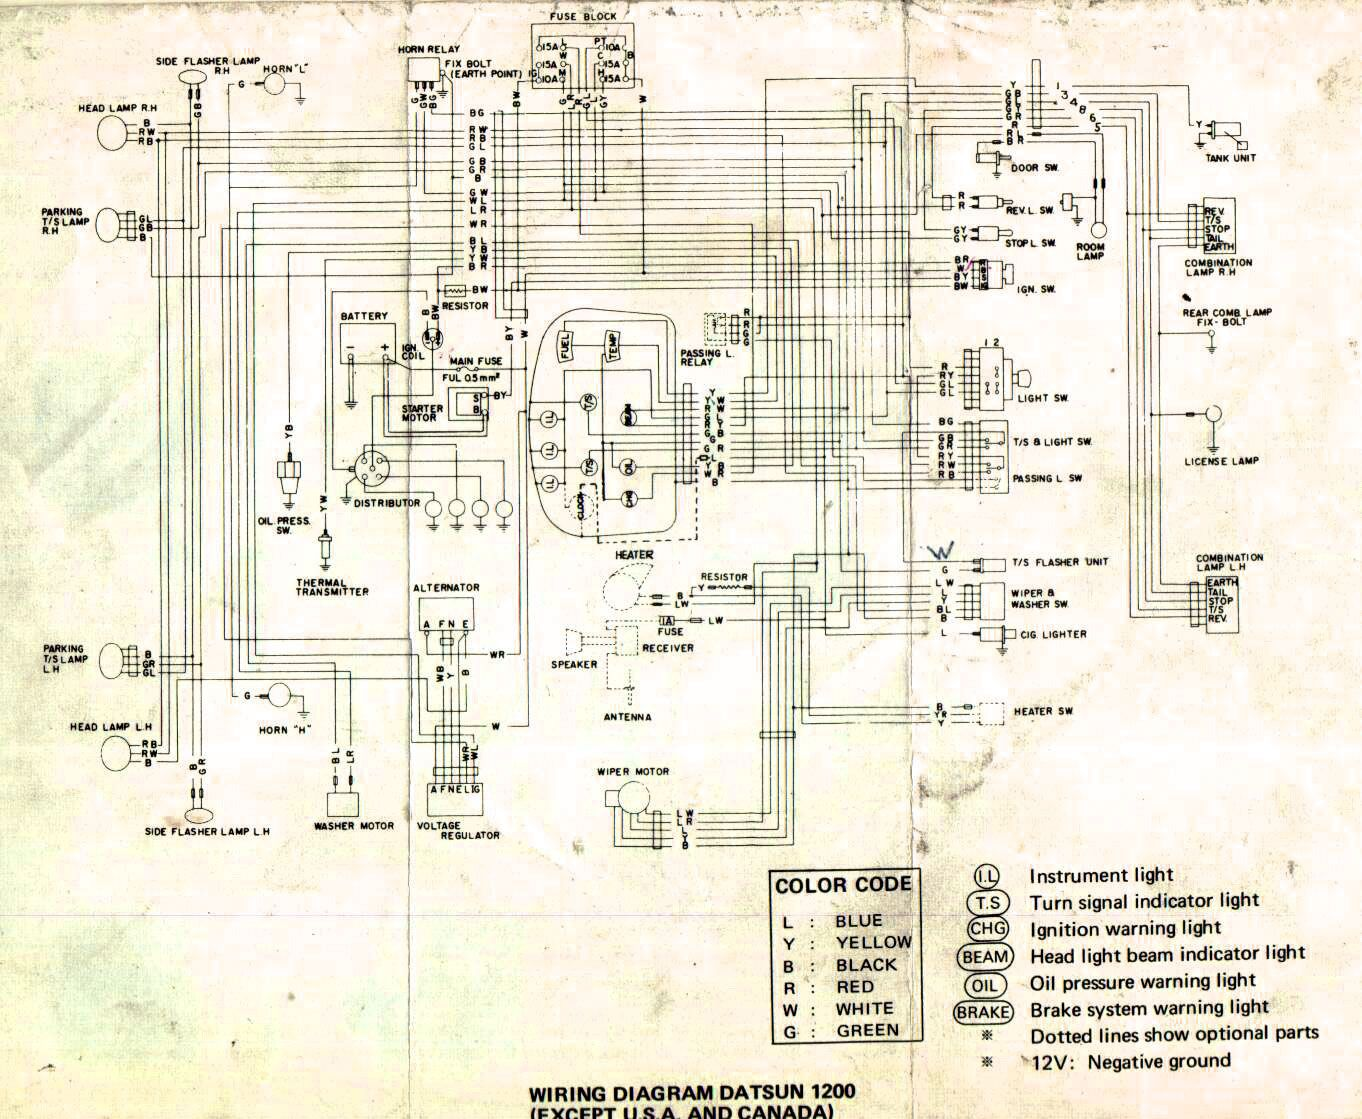 Nissan 1400 Ignition Wiring Diagram How To Draw A Circle Of Induction Motor For Bakkie 8